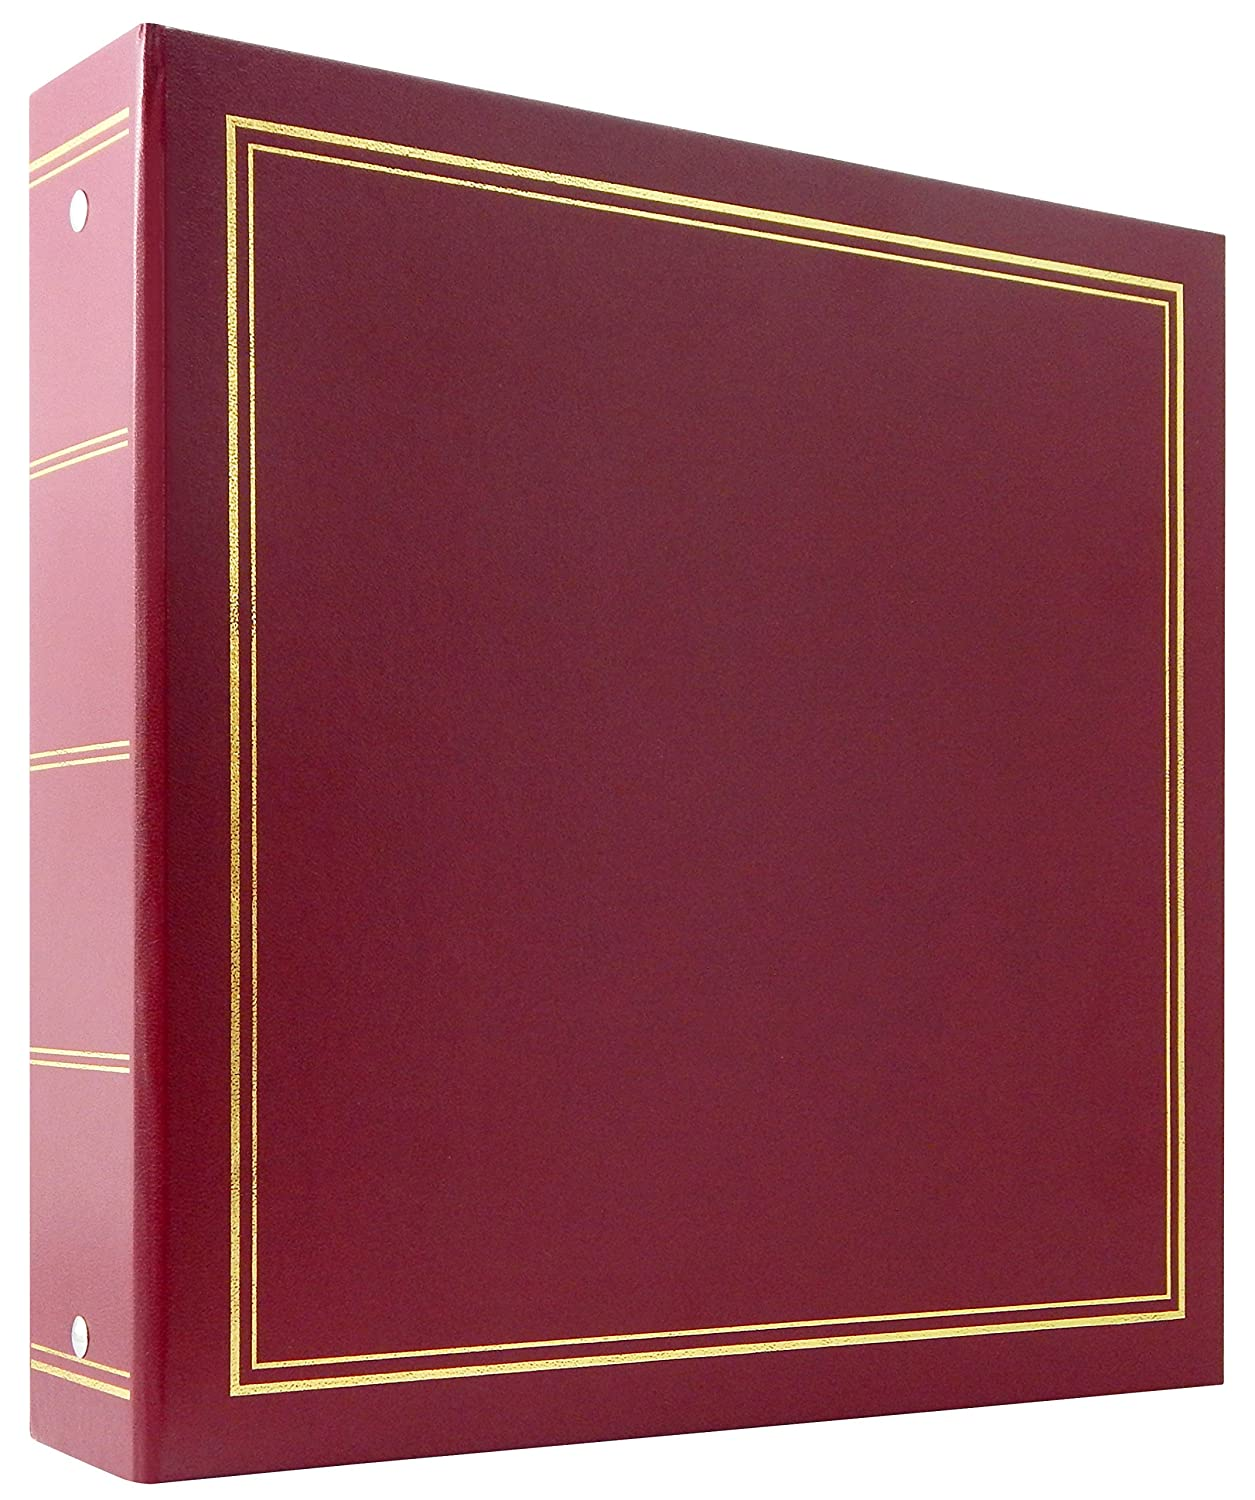 MCS Library Collection 400 Pocket 4x6 Photo Album in Burgundy MCS Industries 804001